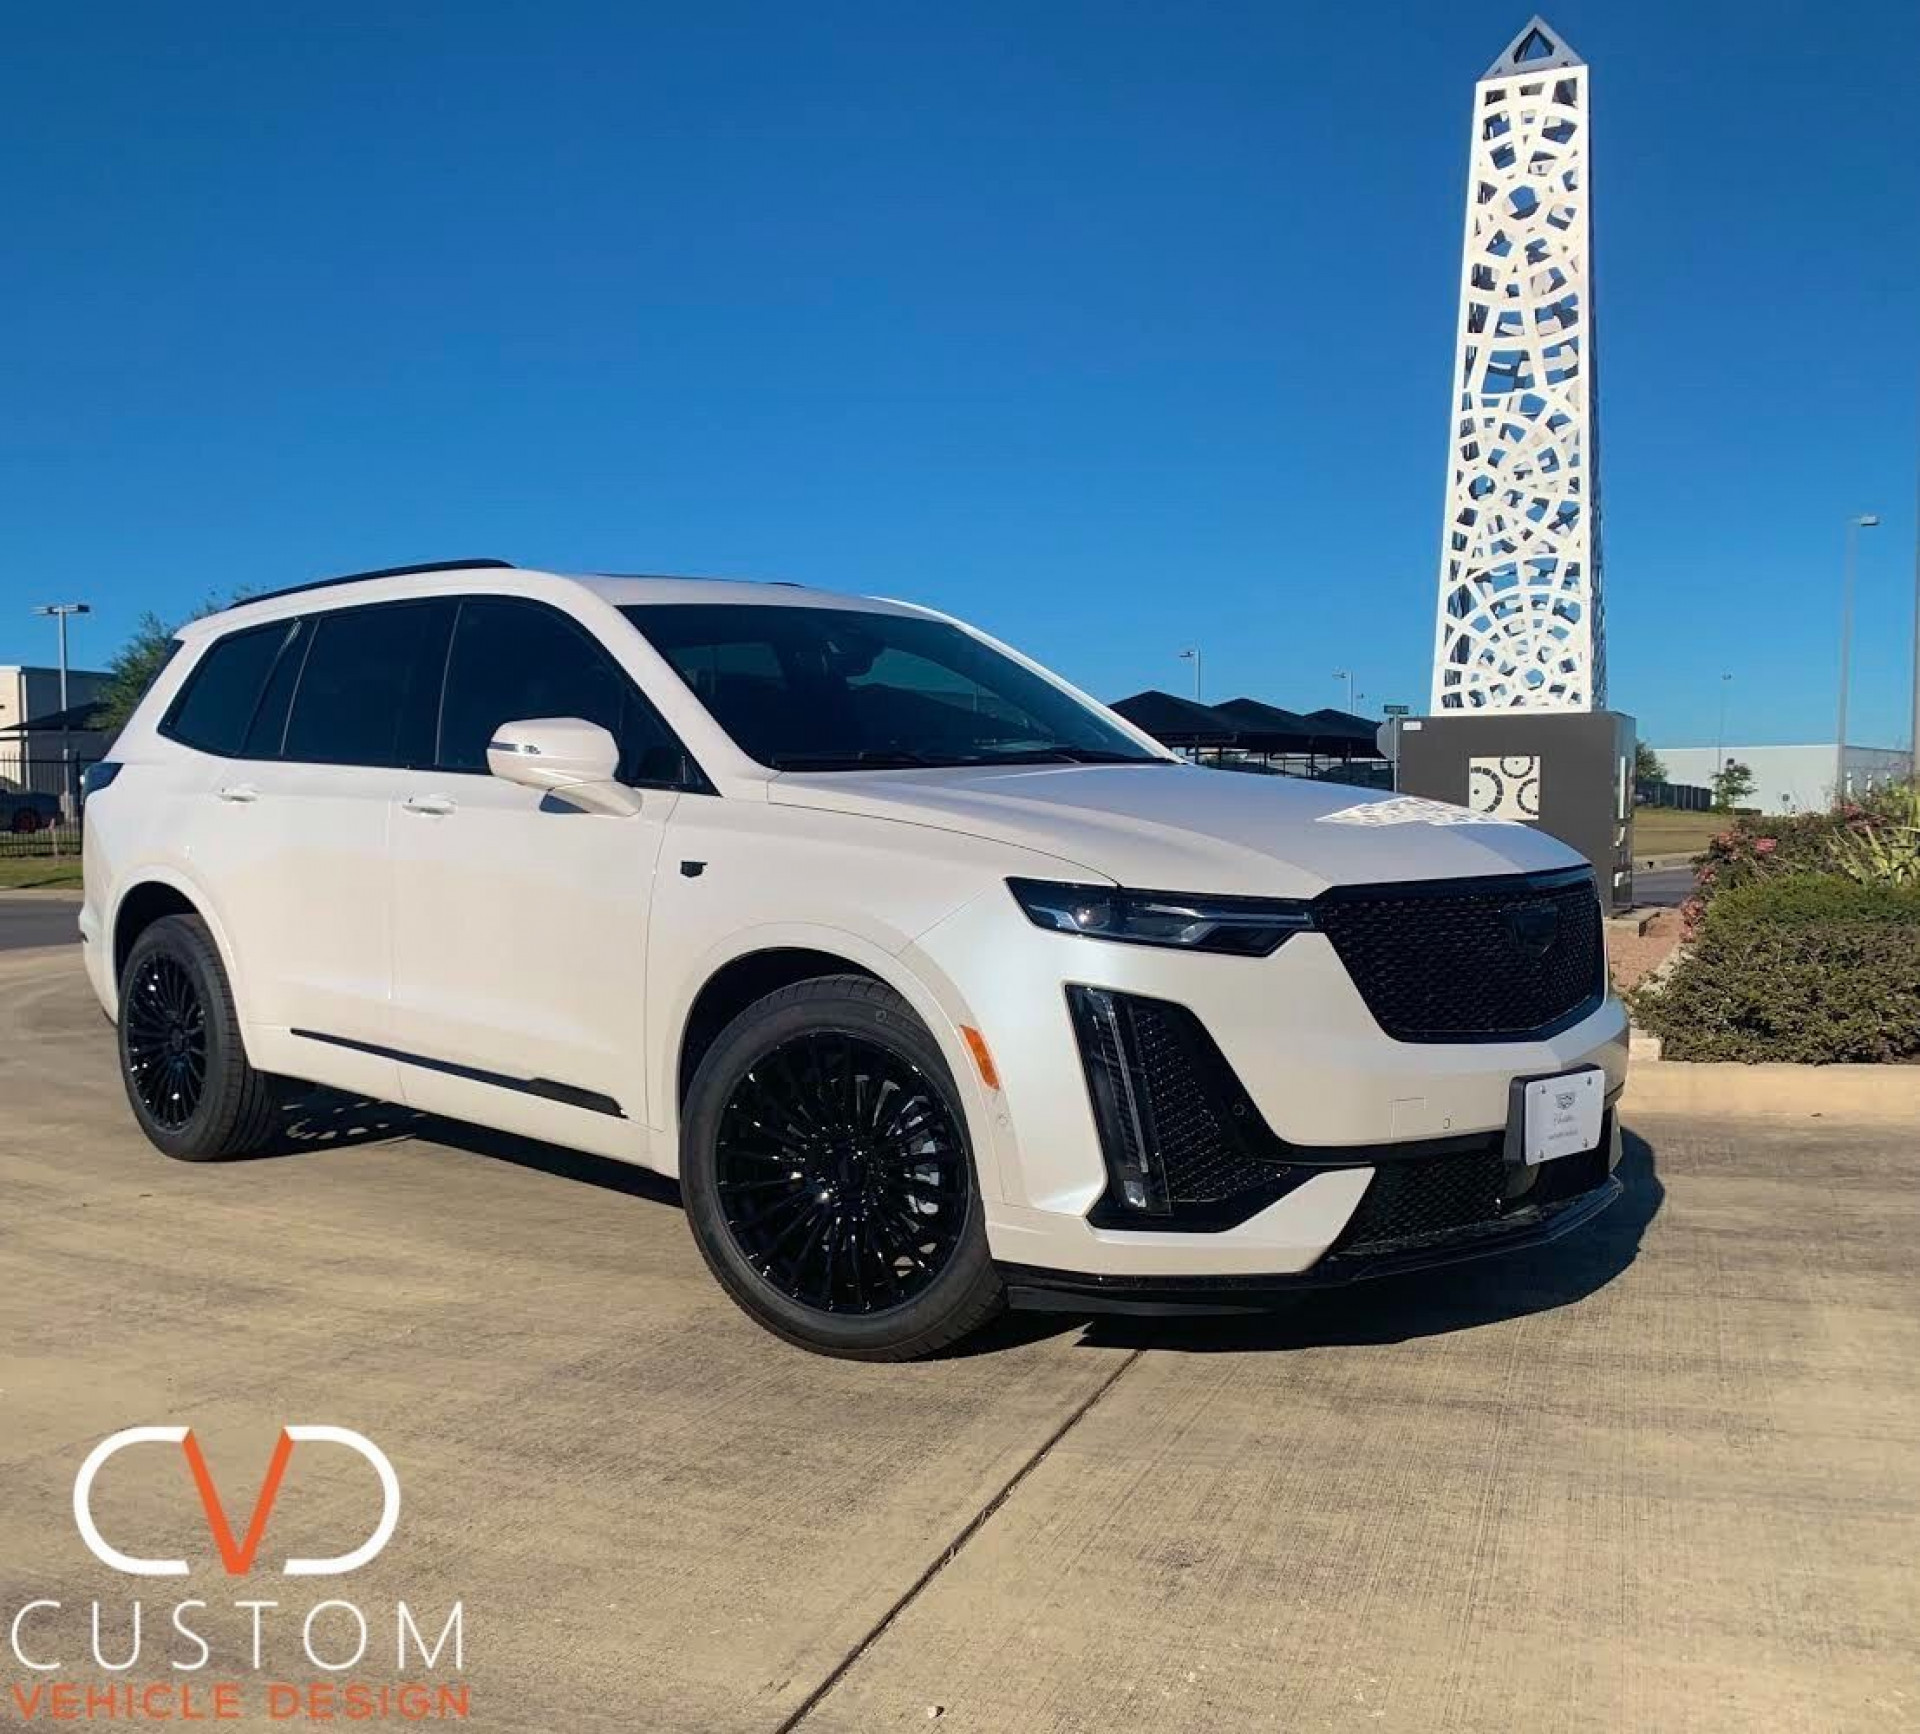 2021 Cadillac XT6 with Vogue VT387 wheels and Vogue signature V Tyres